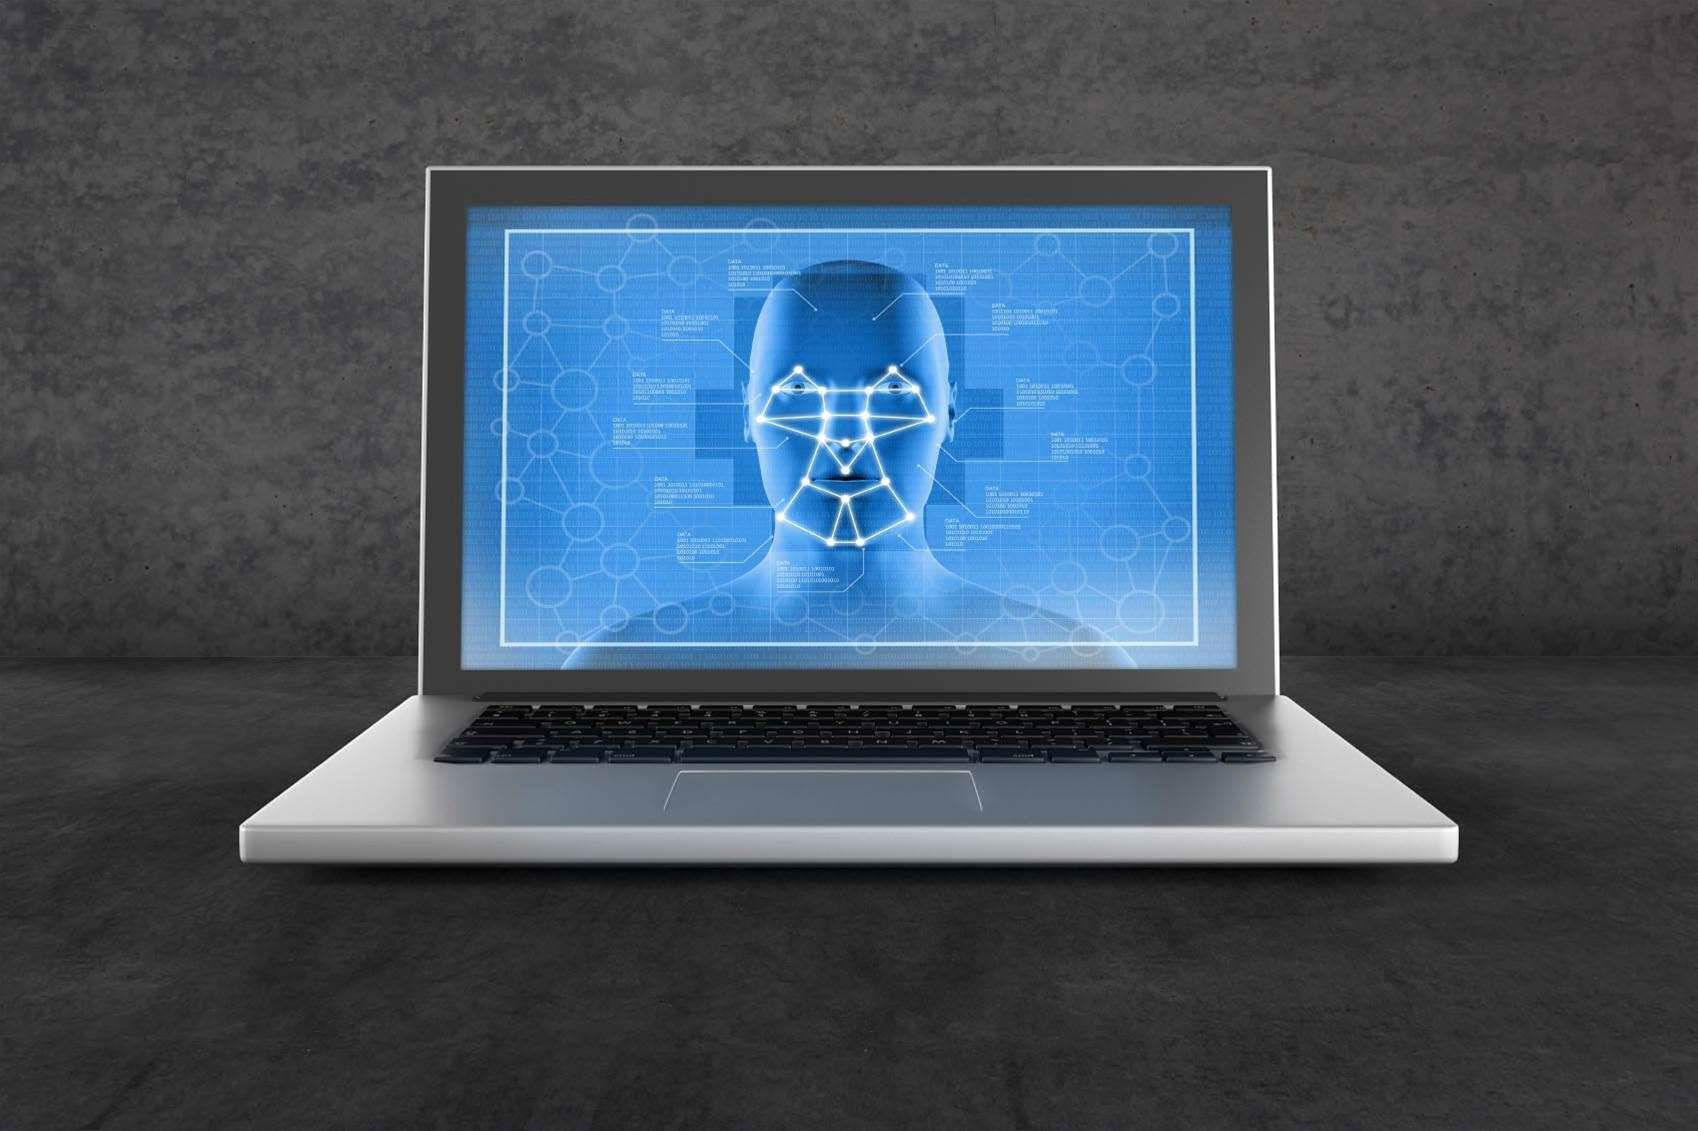 Aussie facial recognition system would give police 'unprecedented' power